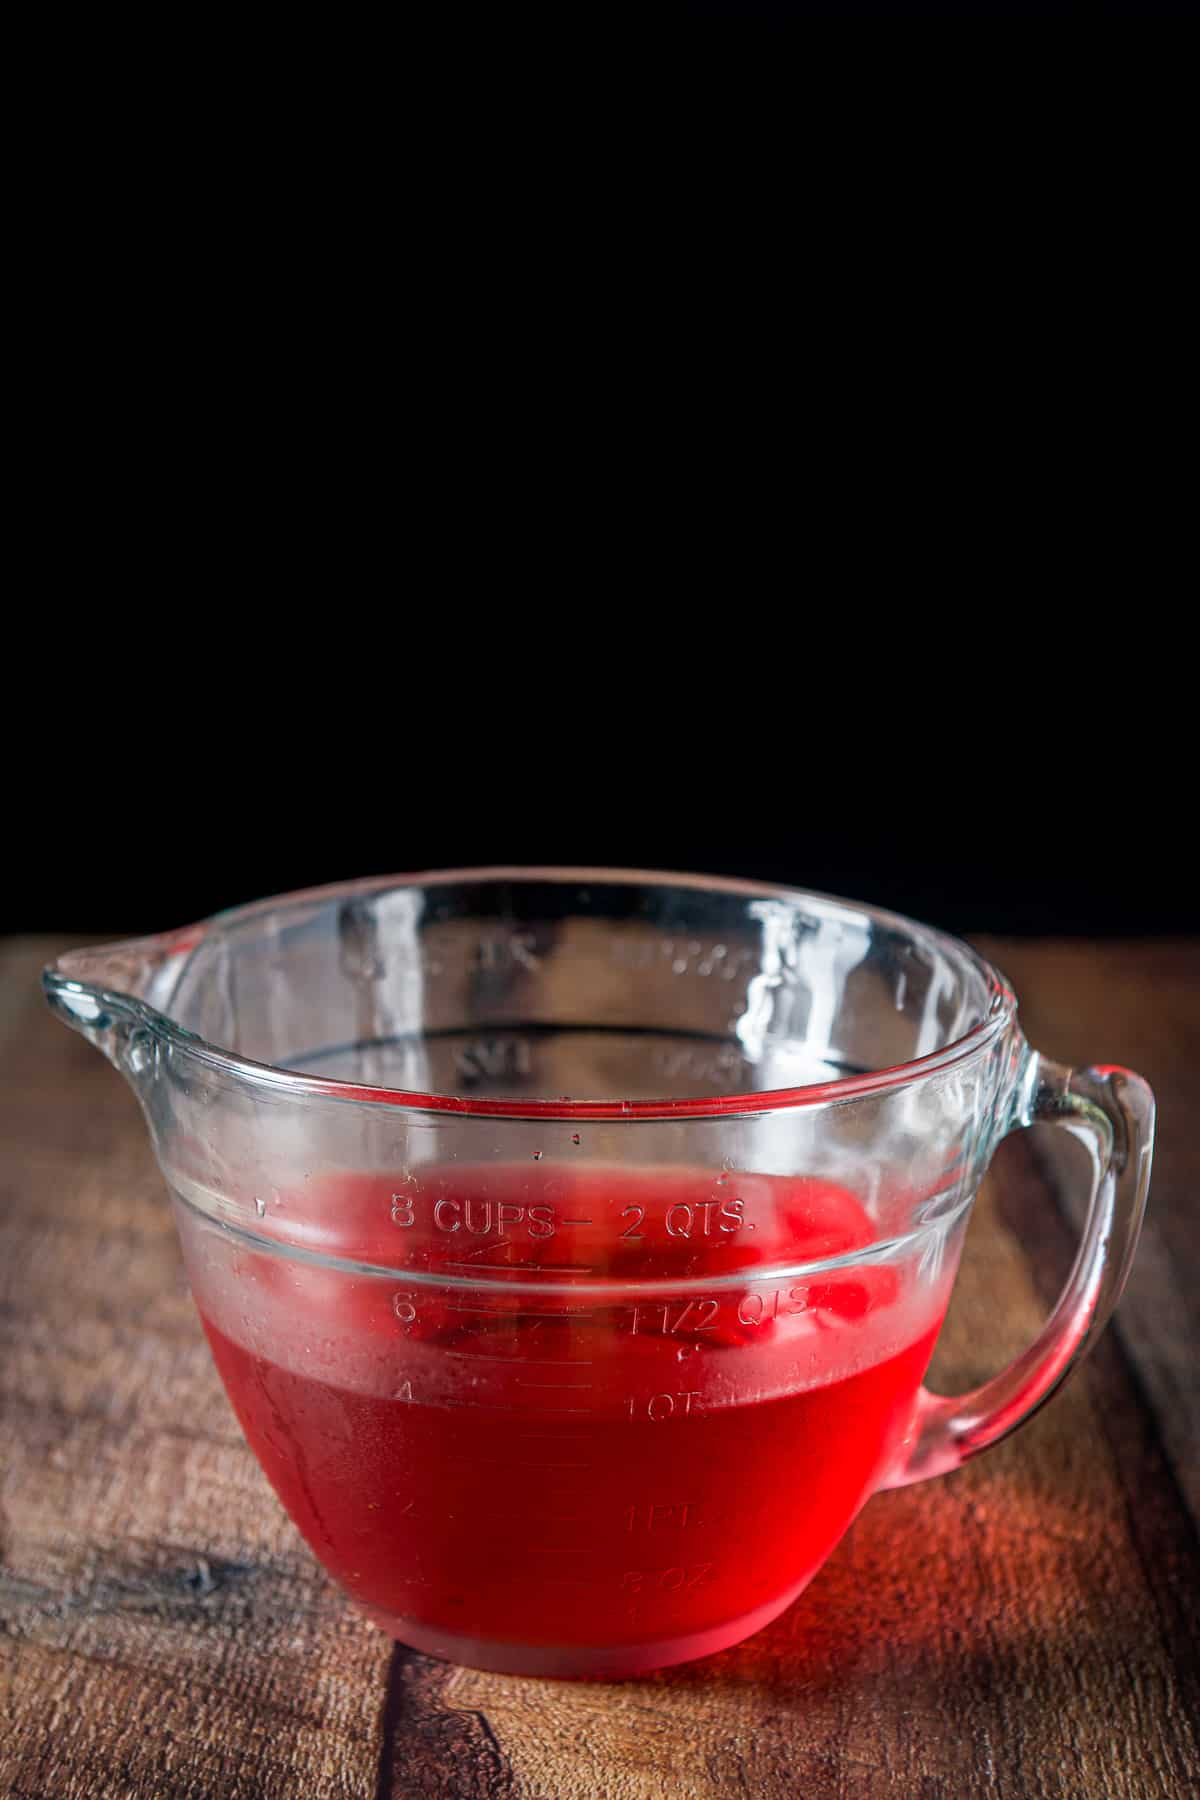 A big glass bowl with the raspberry vodka in it